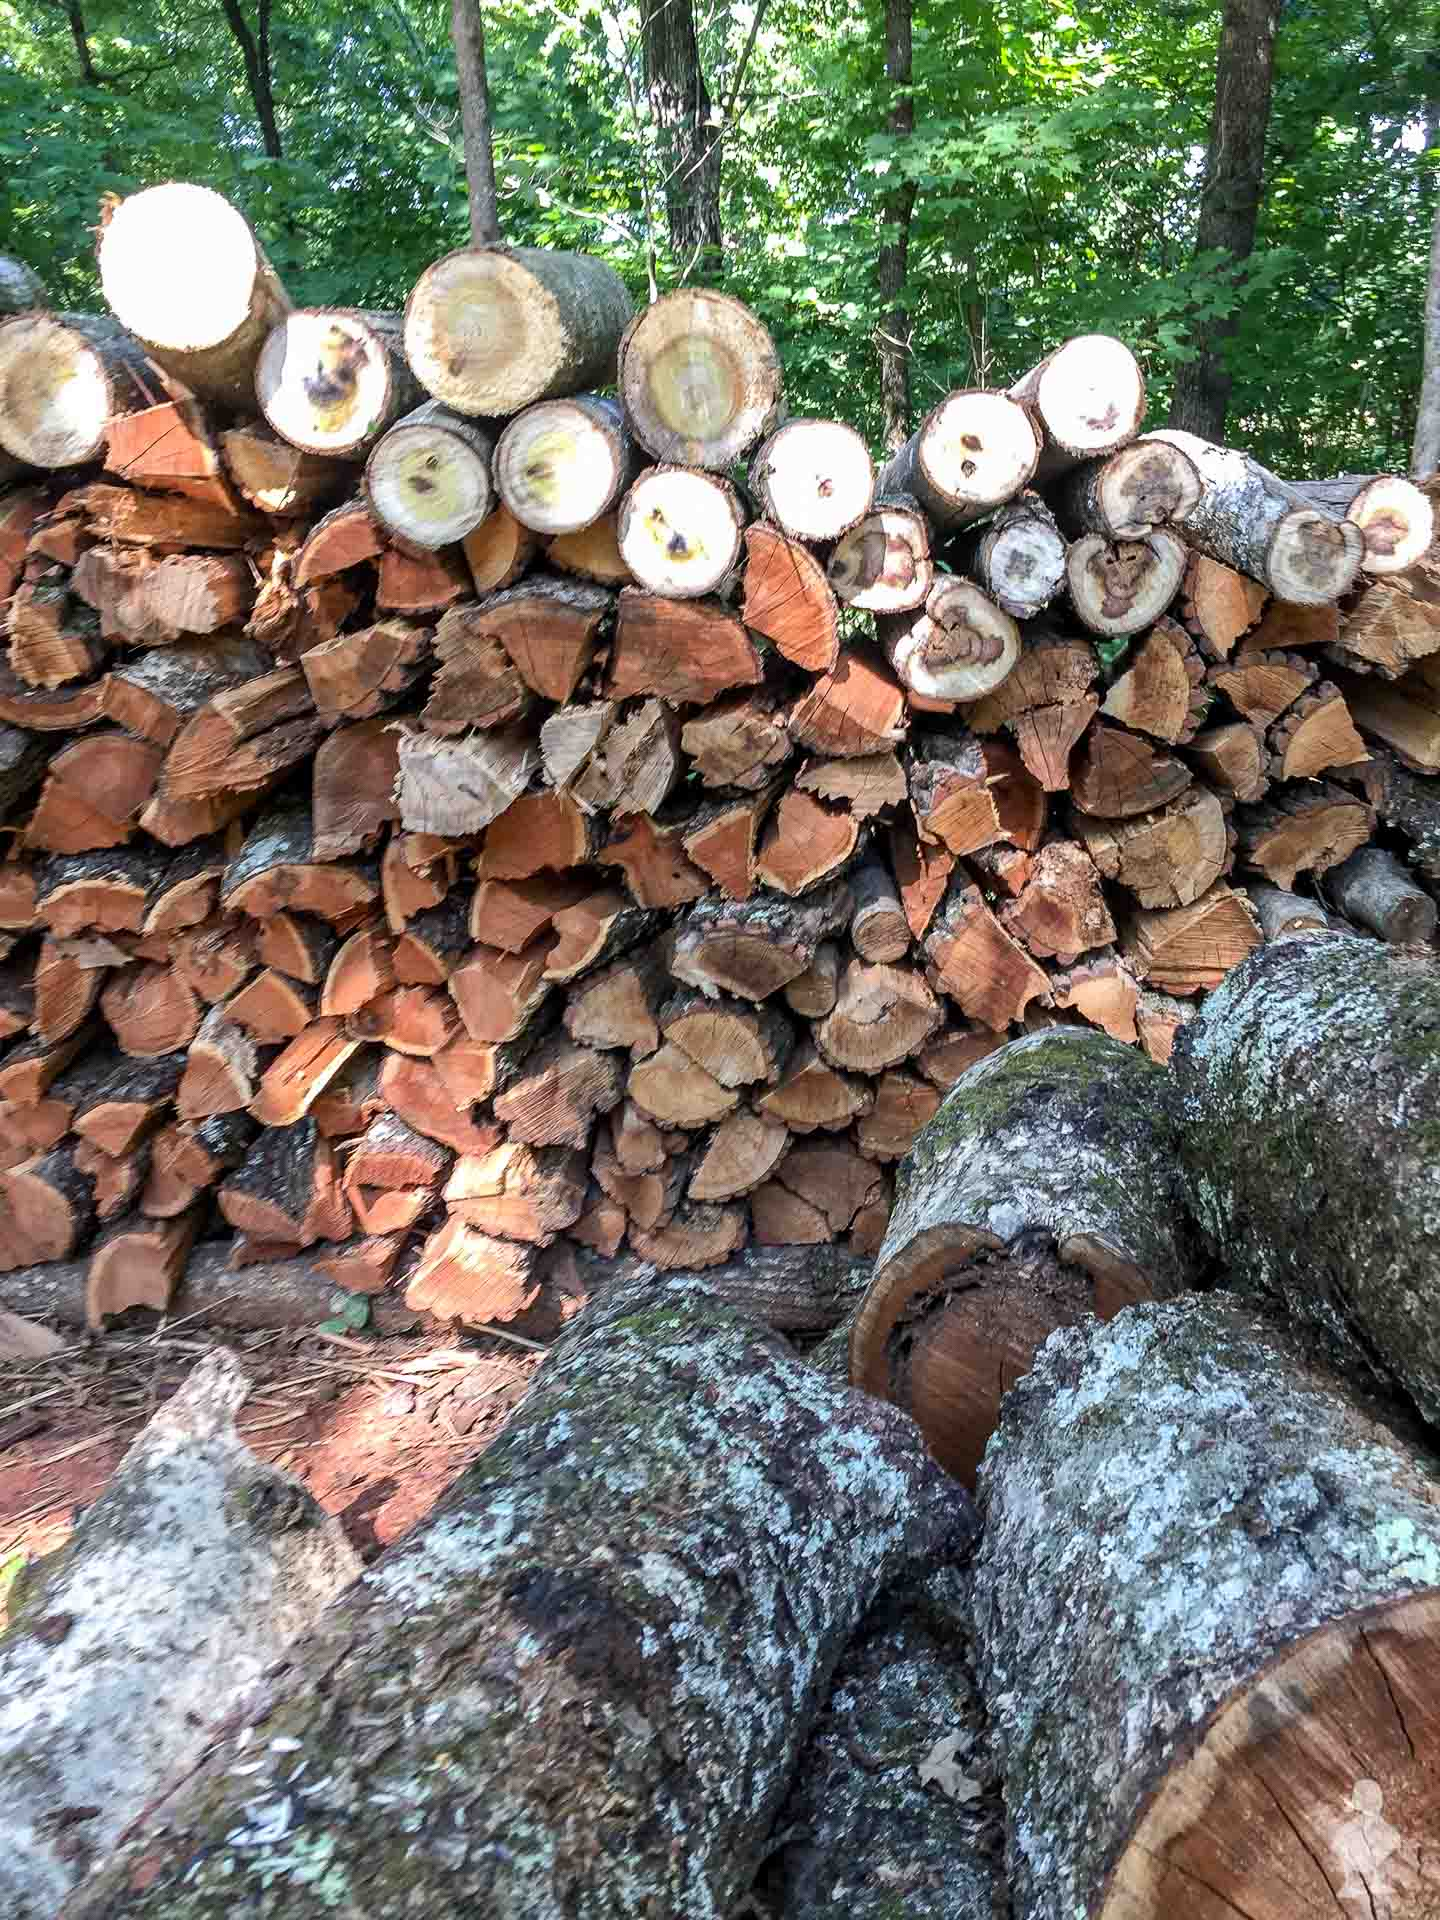 Giant woodpile in TN